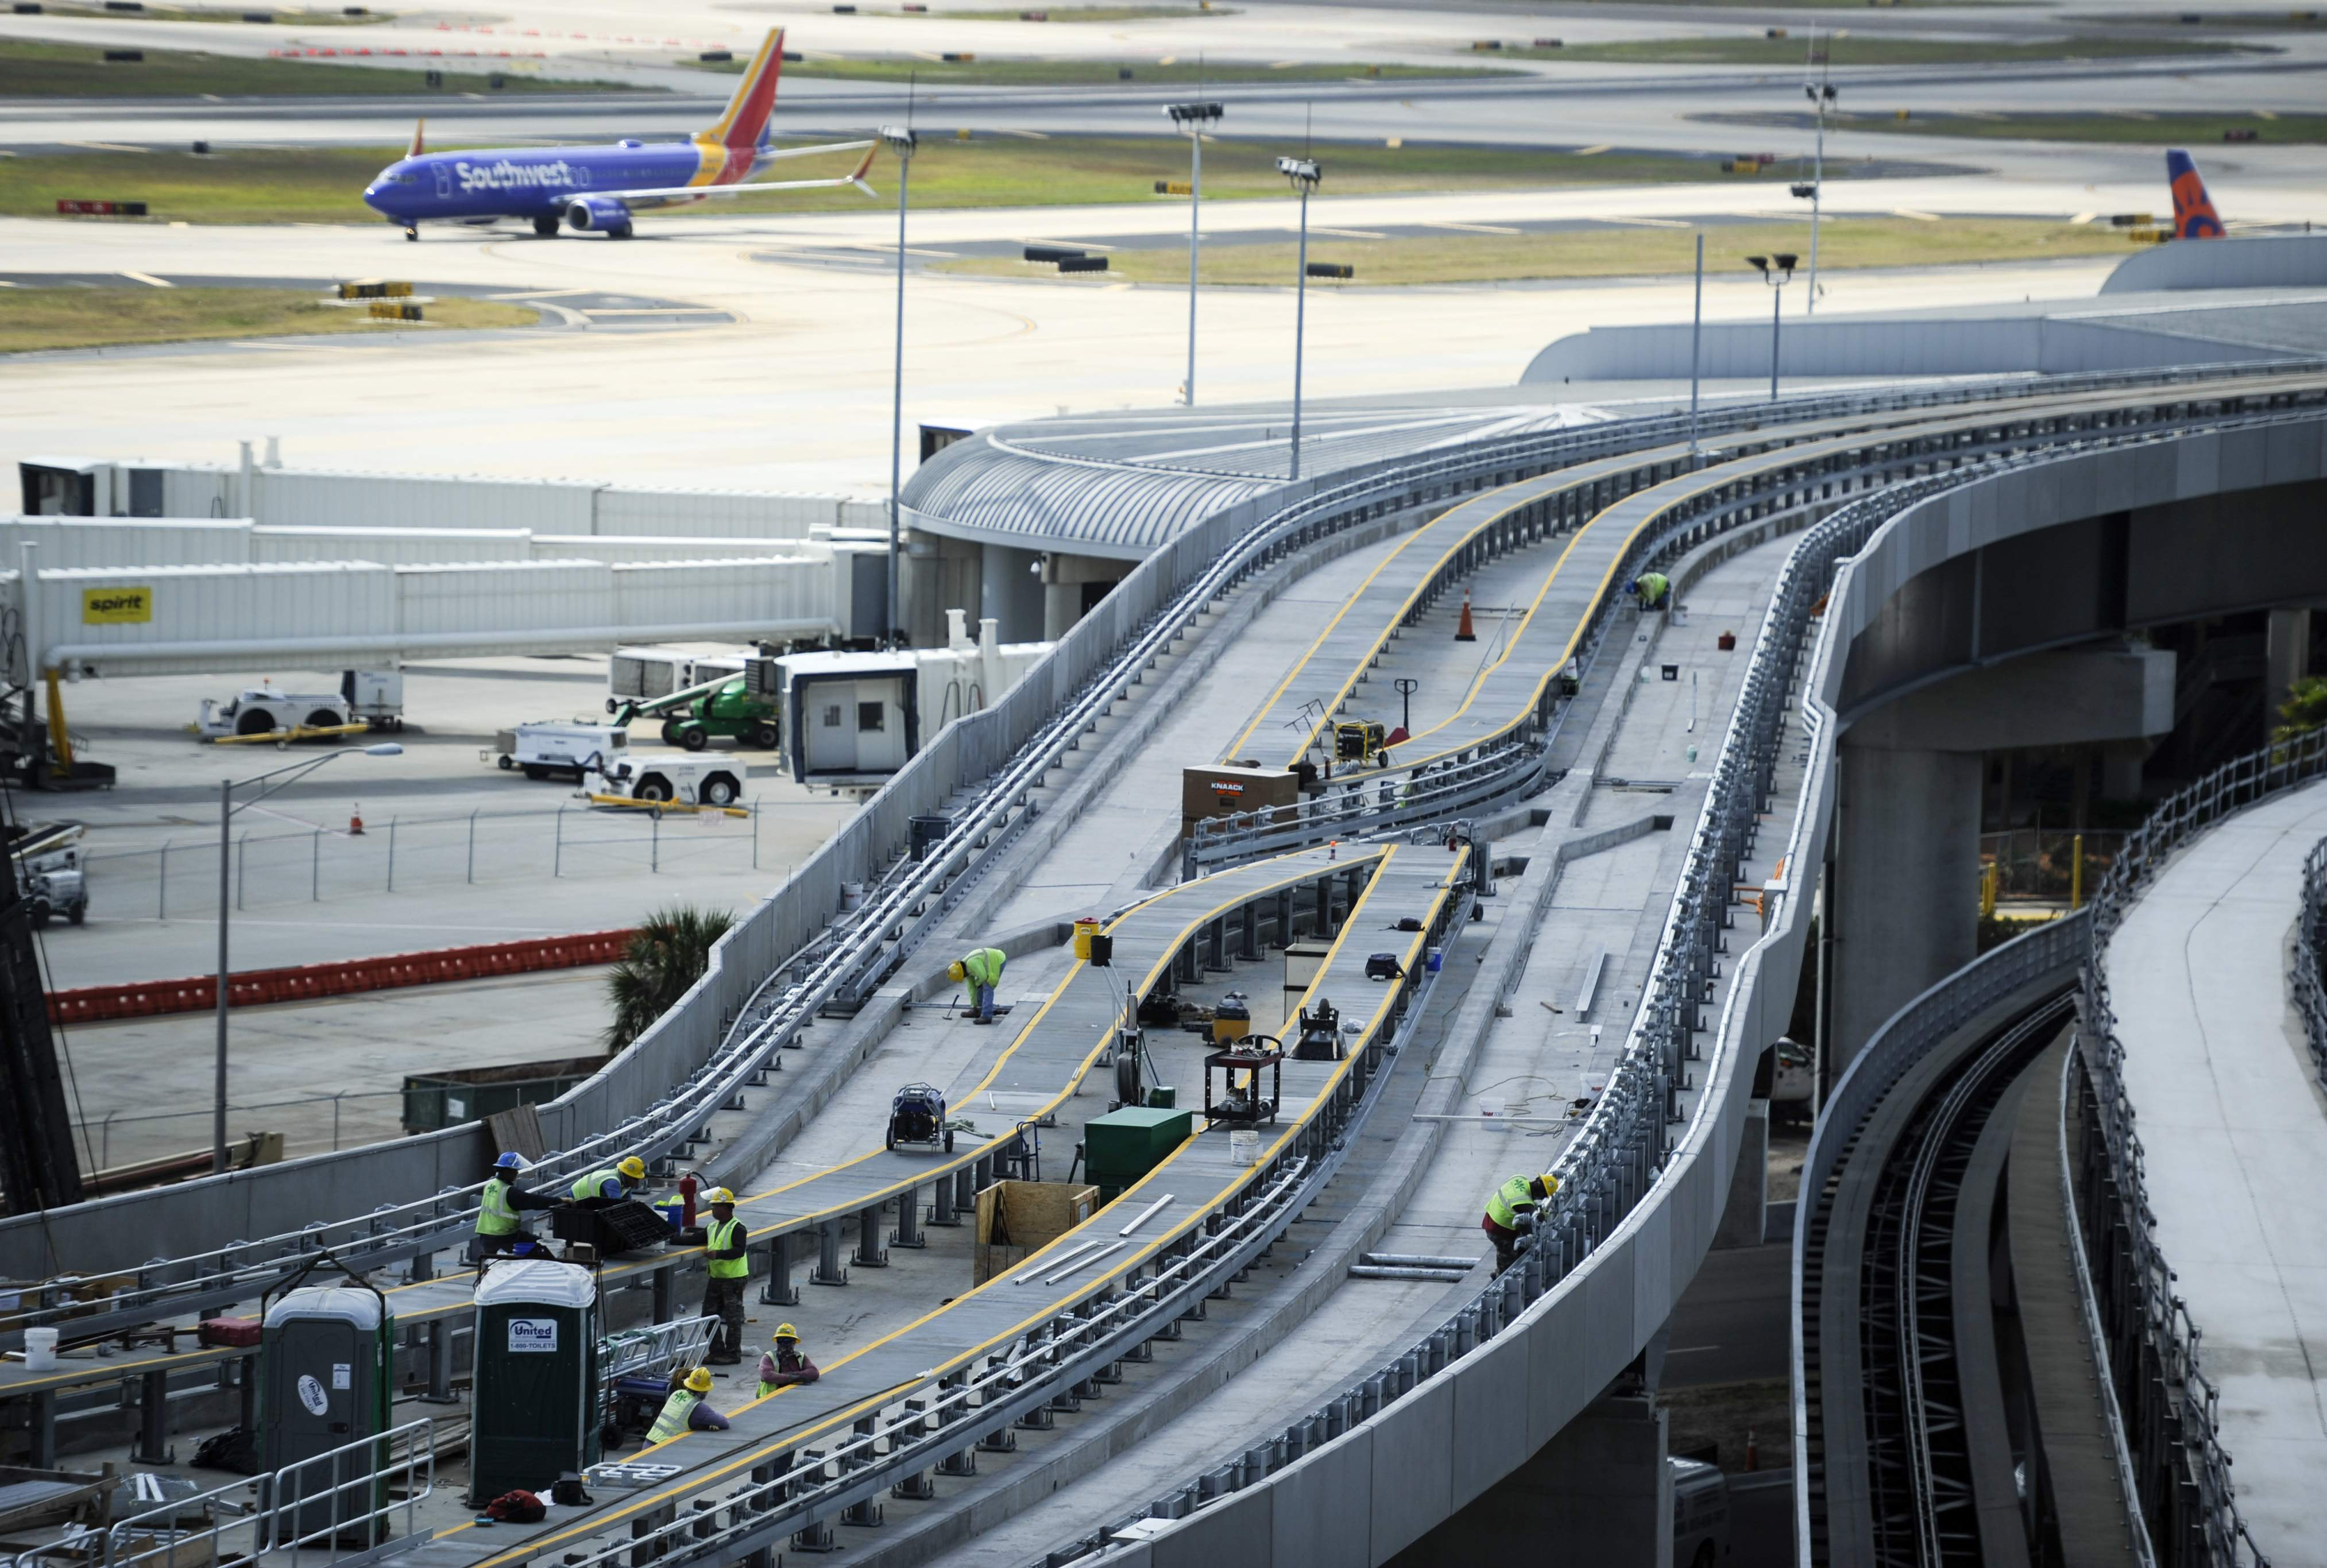 Audit of Tampa airport raises questions about spending and